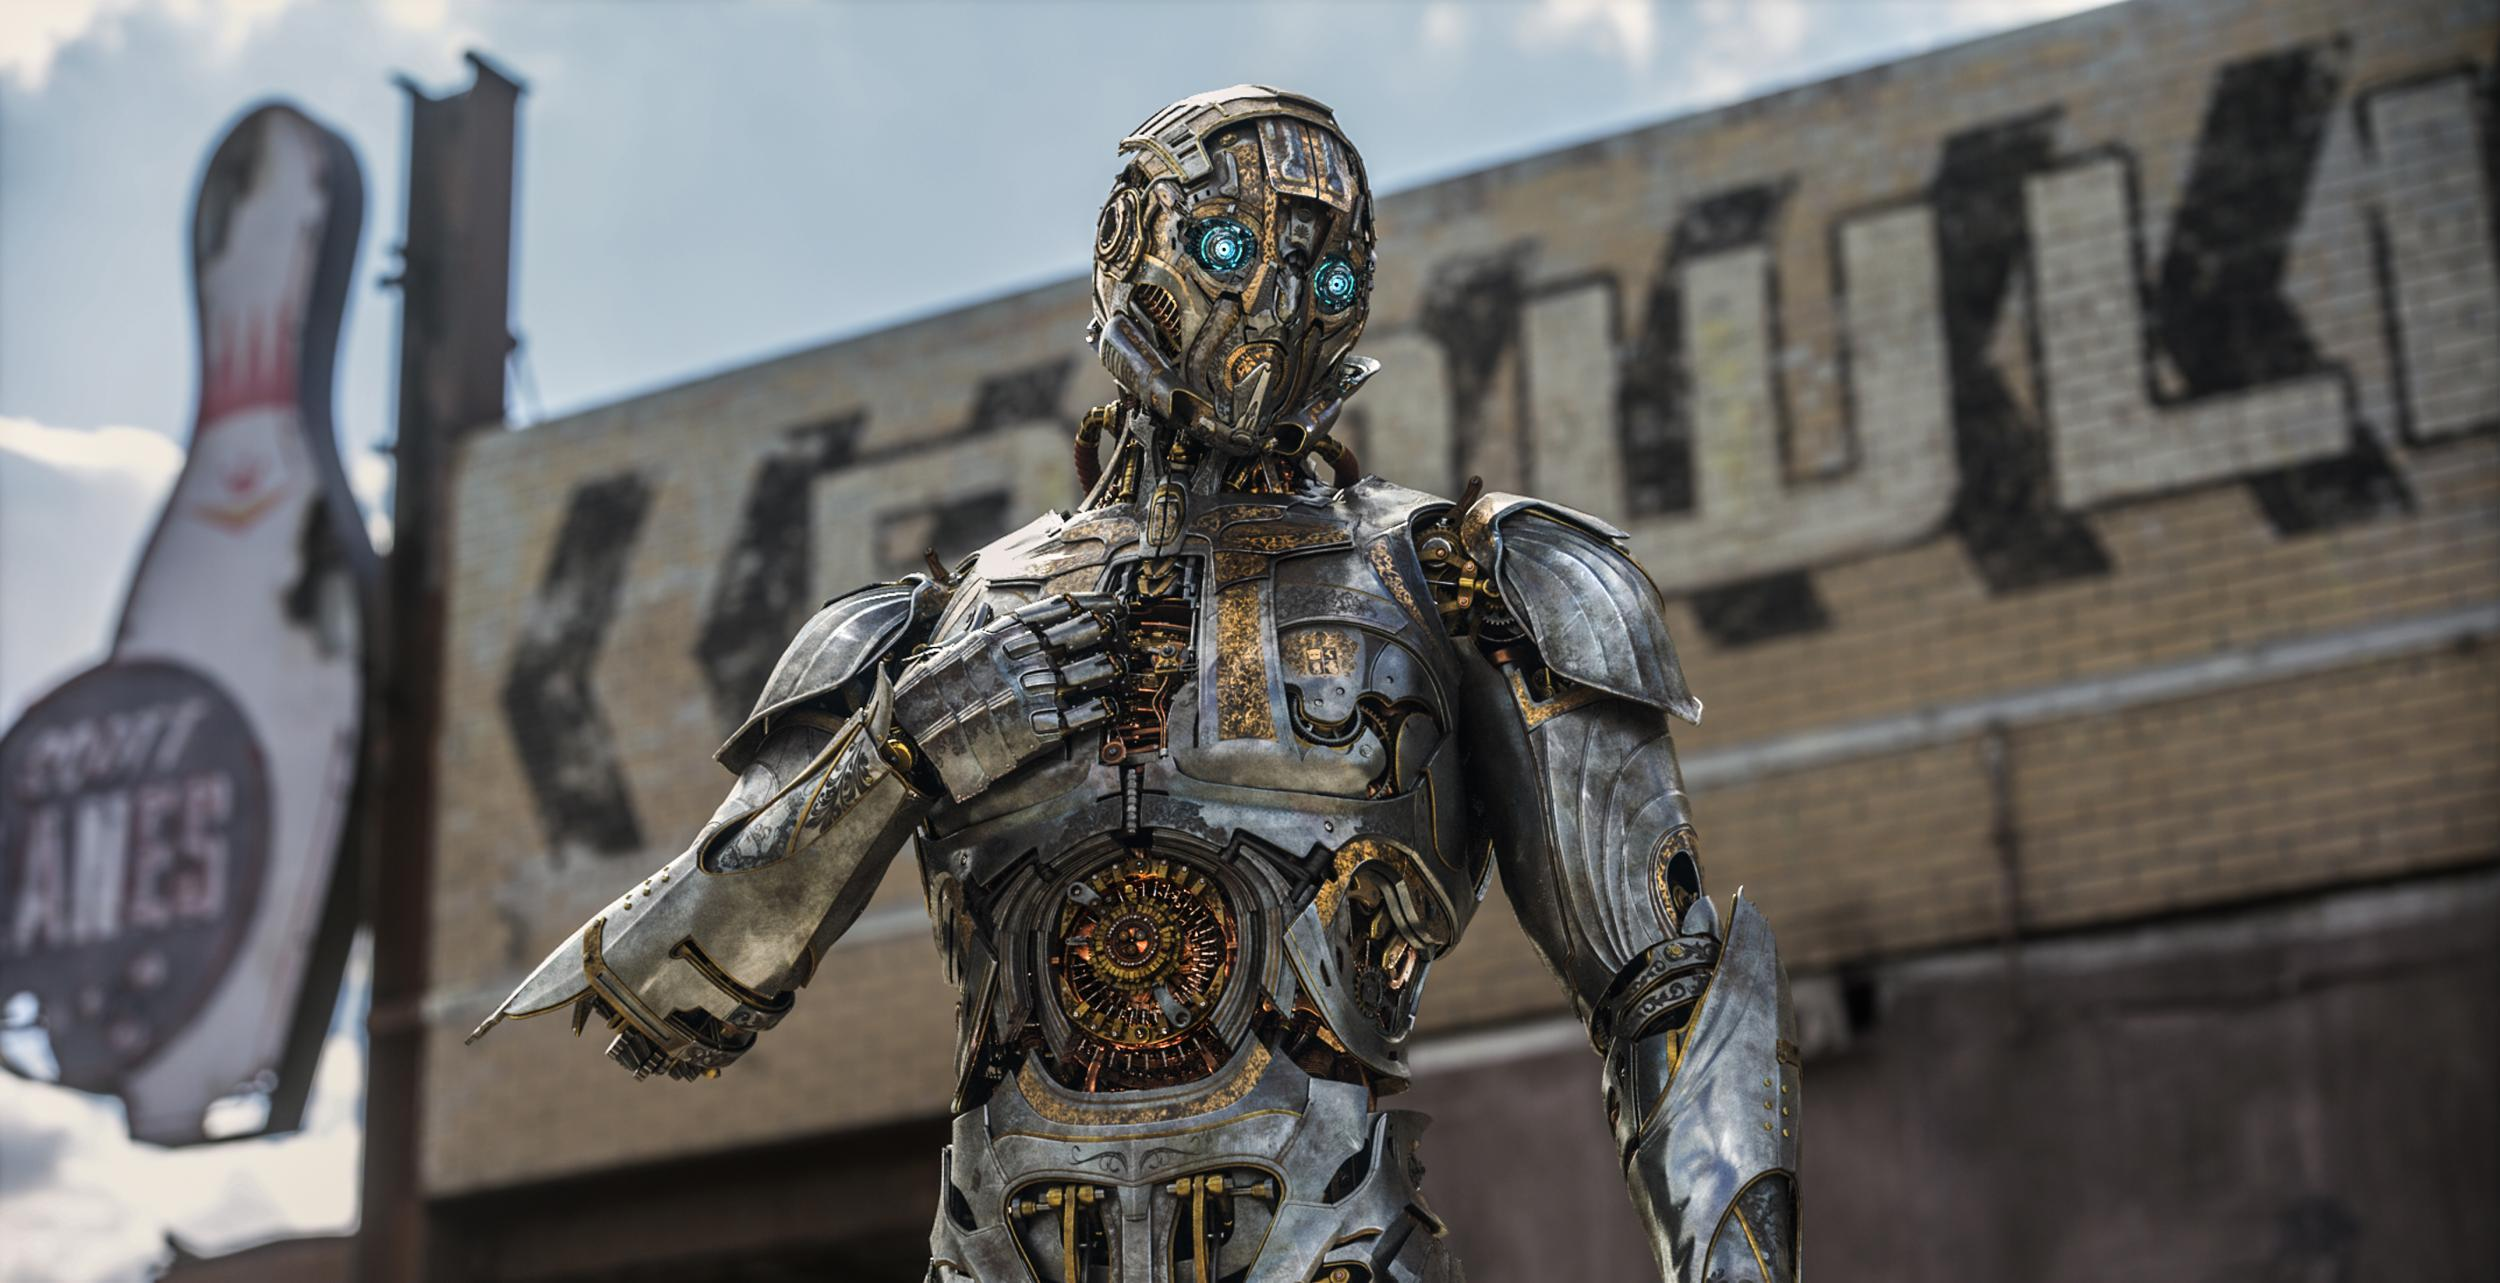 Meet The Main Characters Of Transformers Last Knight Transformer Sir Edmunds Butler Is A Human Sized Headmaster Fused With An Organic Life Form Who Transforms Into Elegant Silver Aston Martin